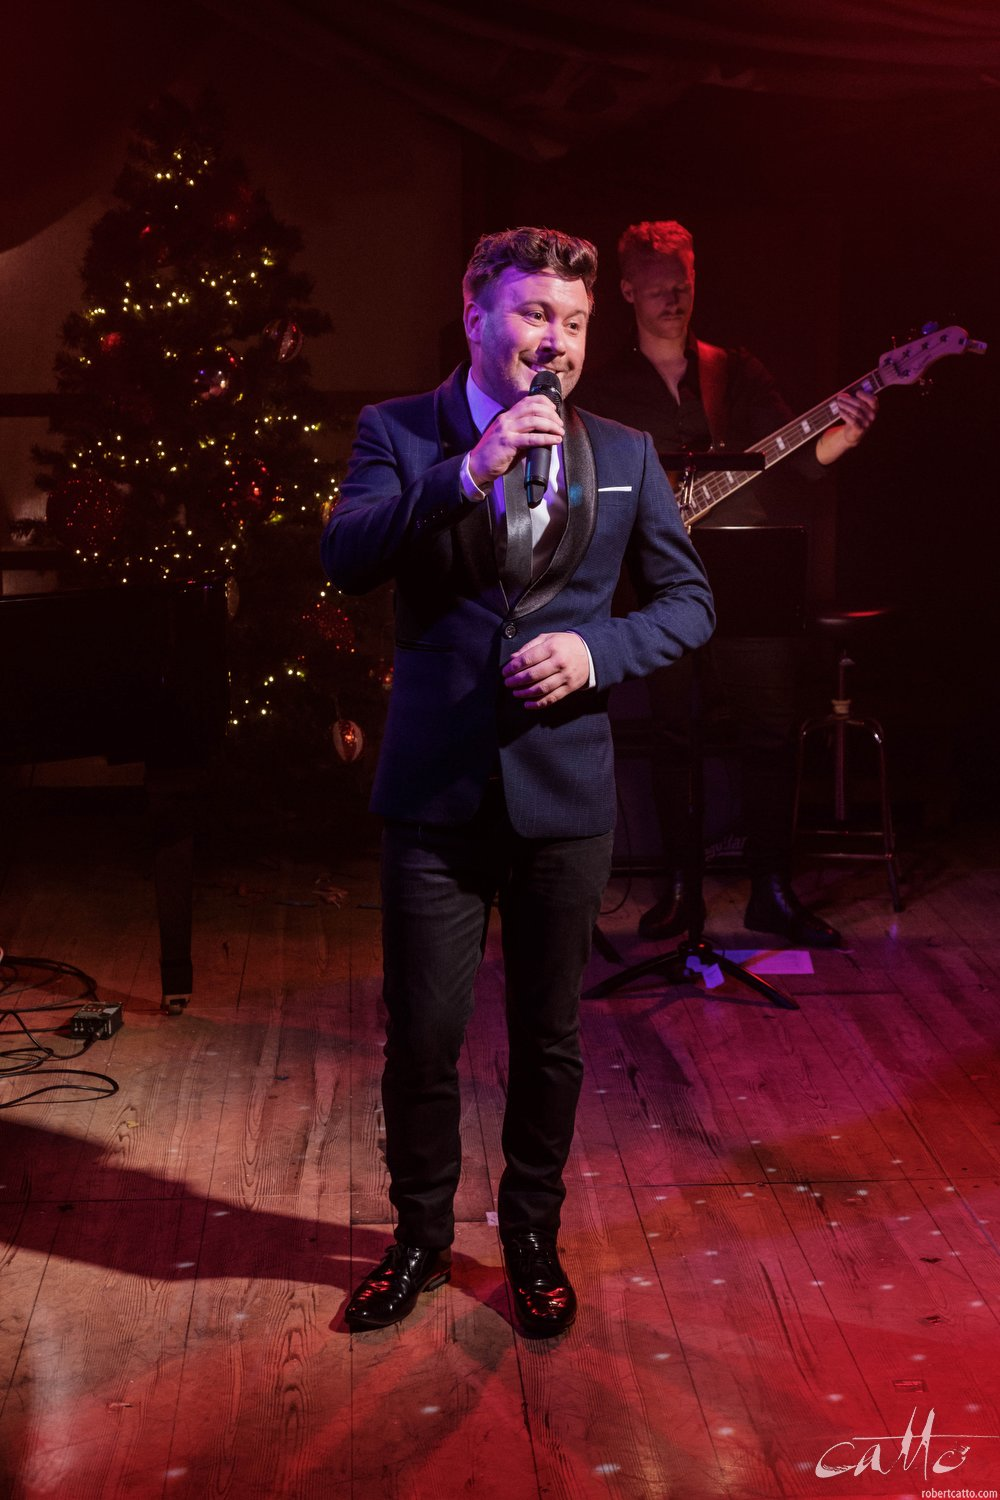 Dash Kruck sings Have Yourself A Merry Little Christmas as the event begins to wind up for another year.